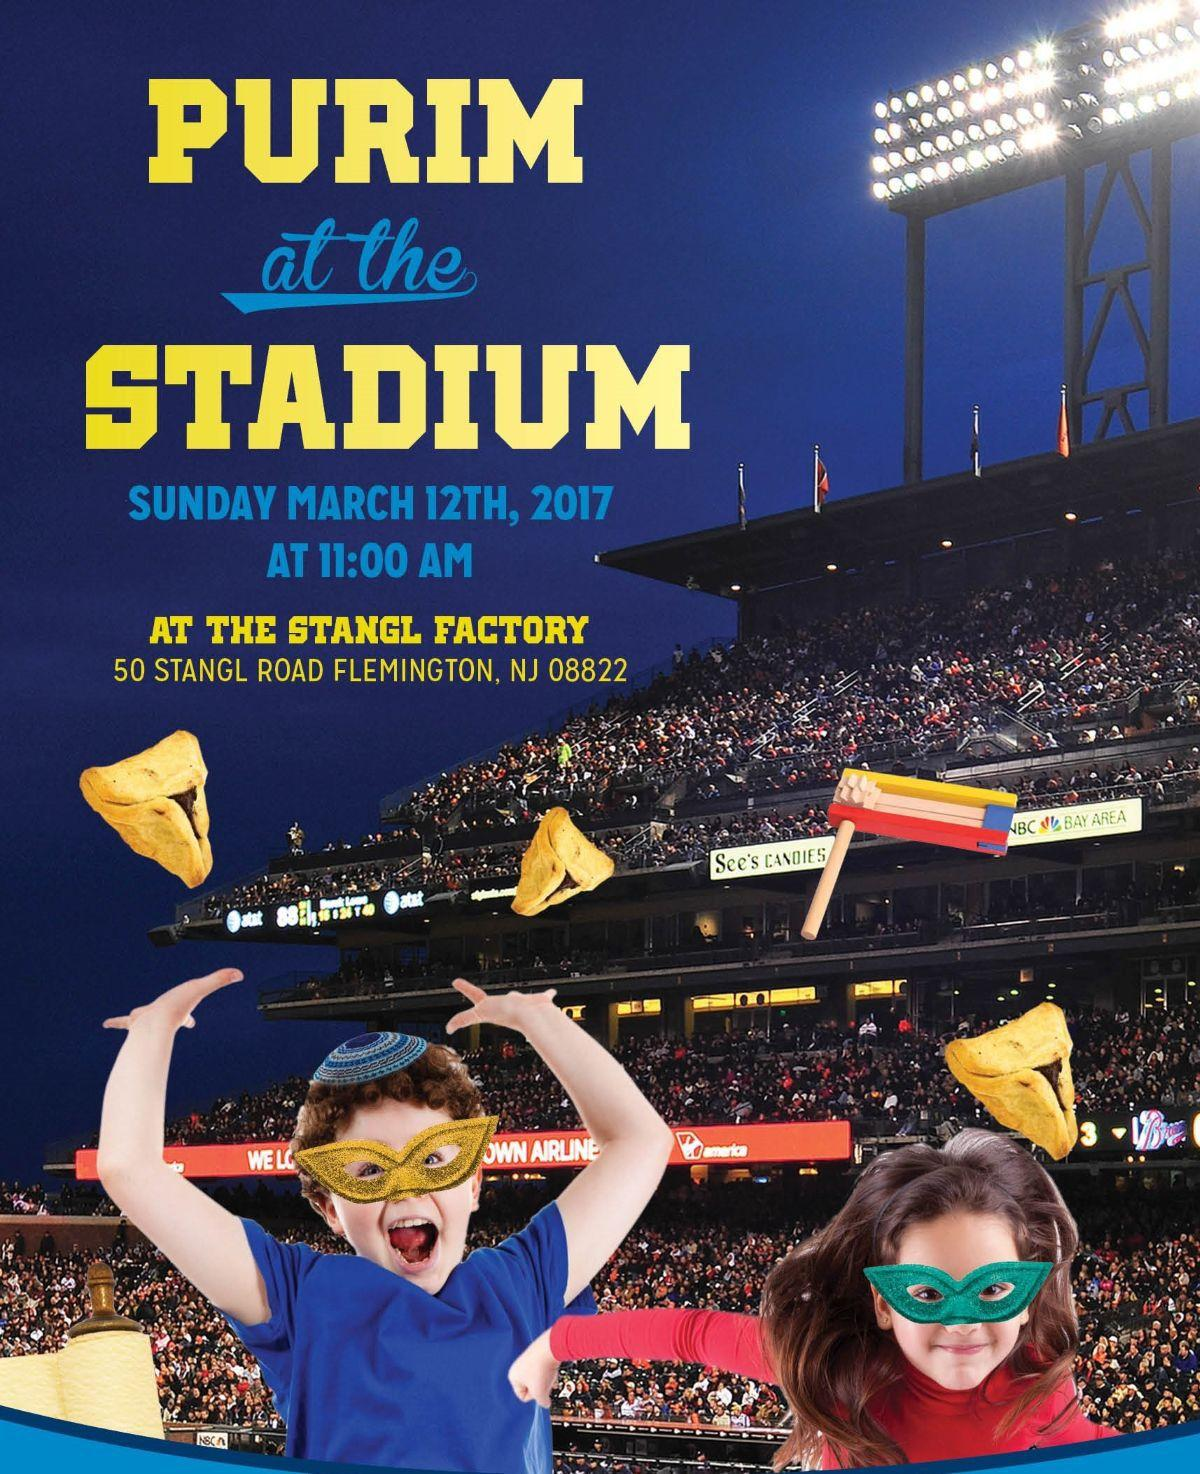 Race cars, Sparky to highlight Chabad's 'Purim in the Stadium'